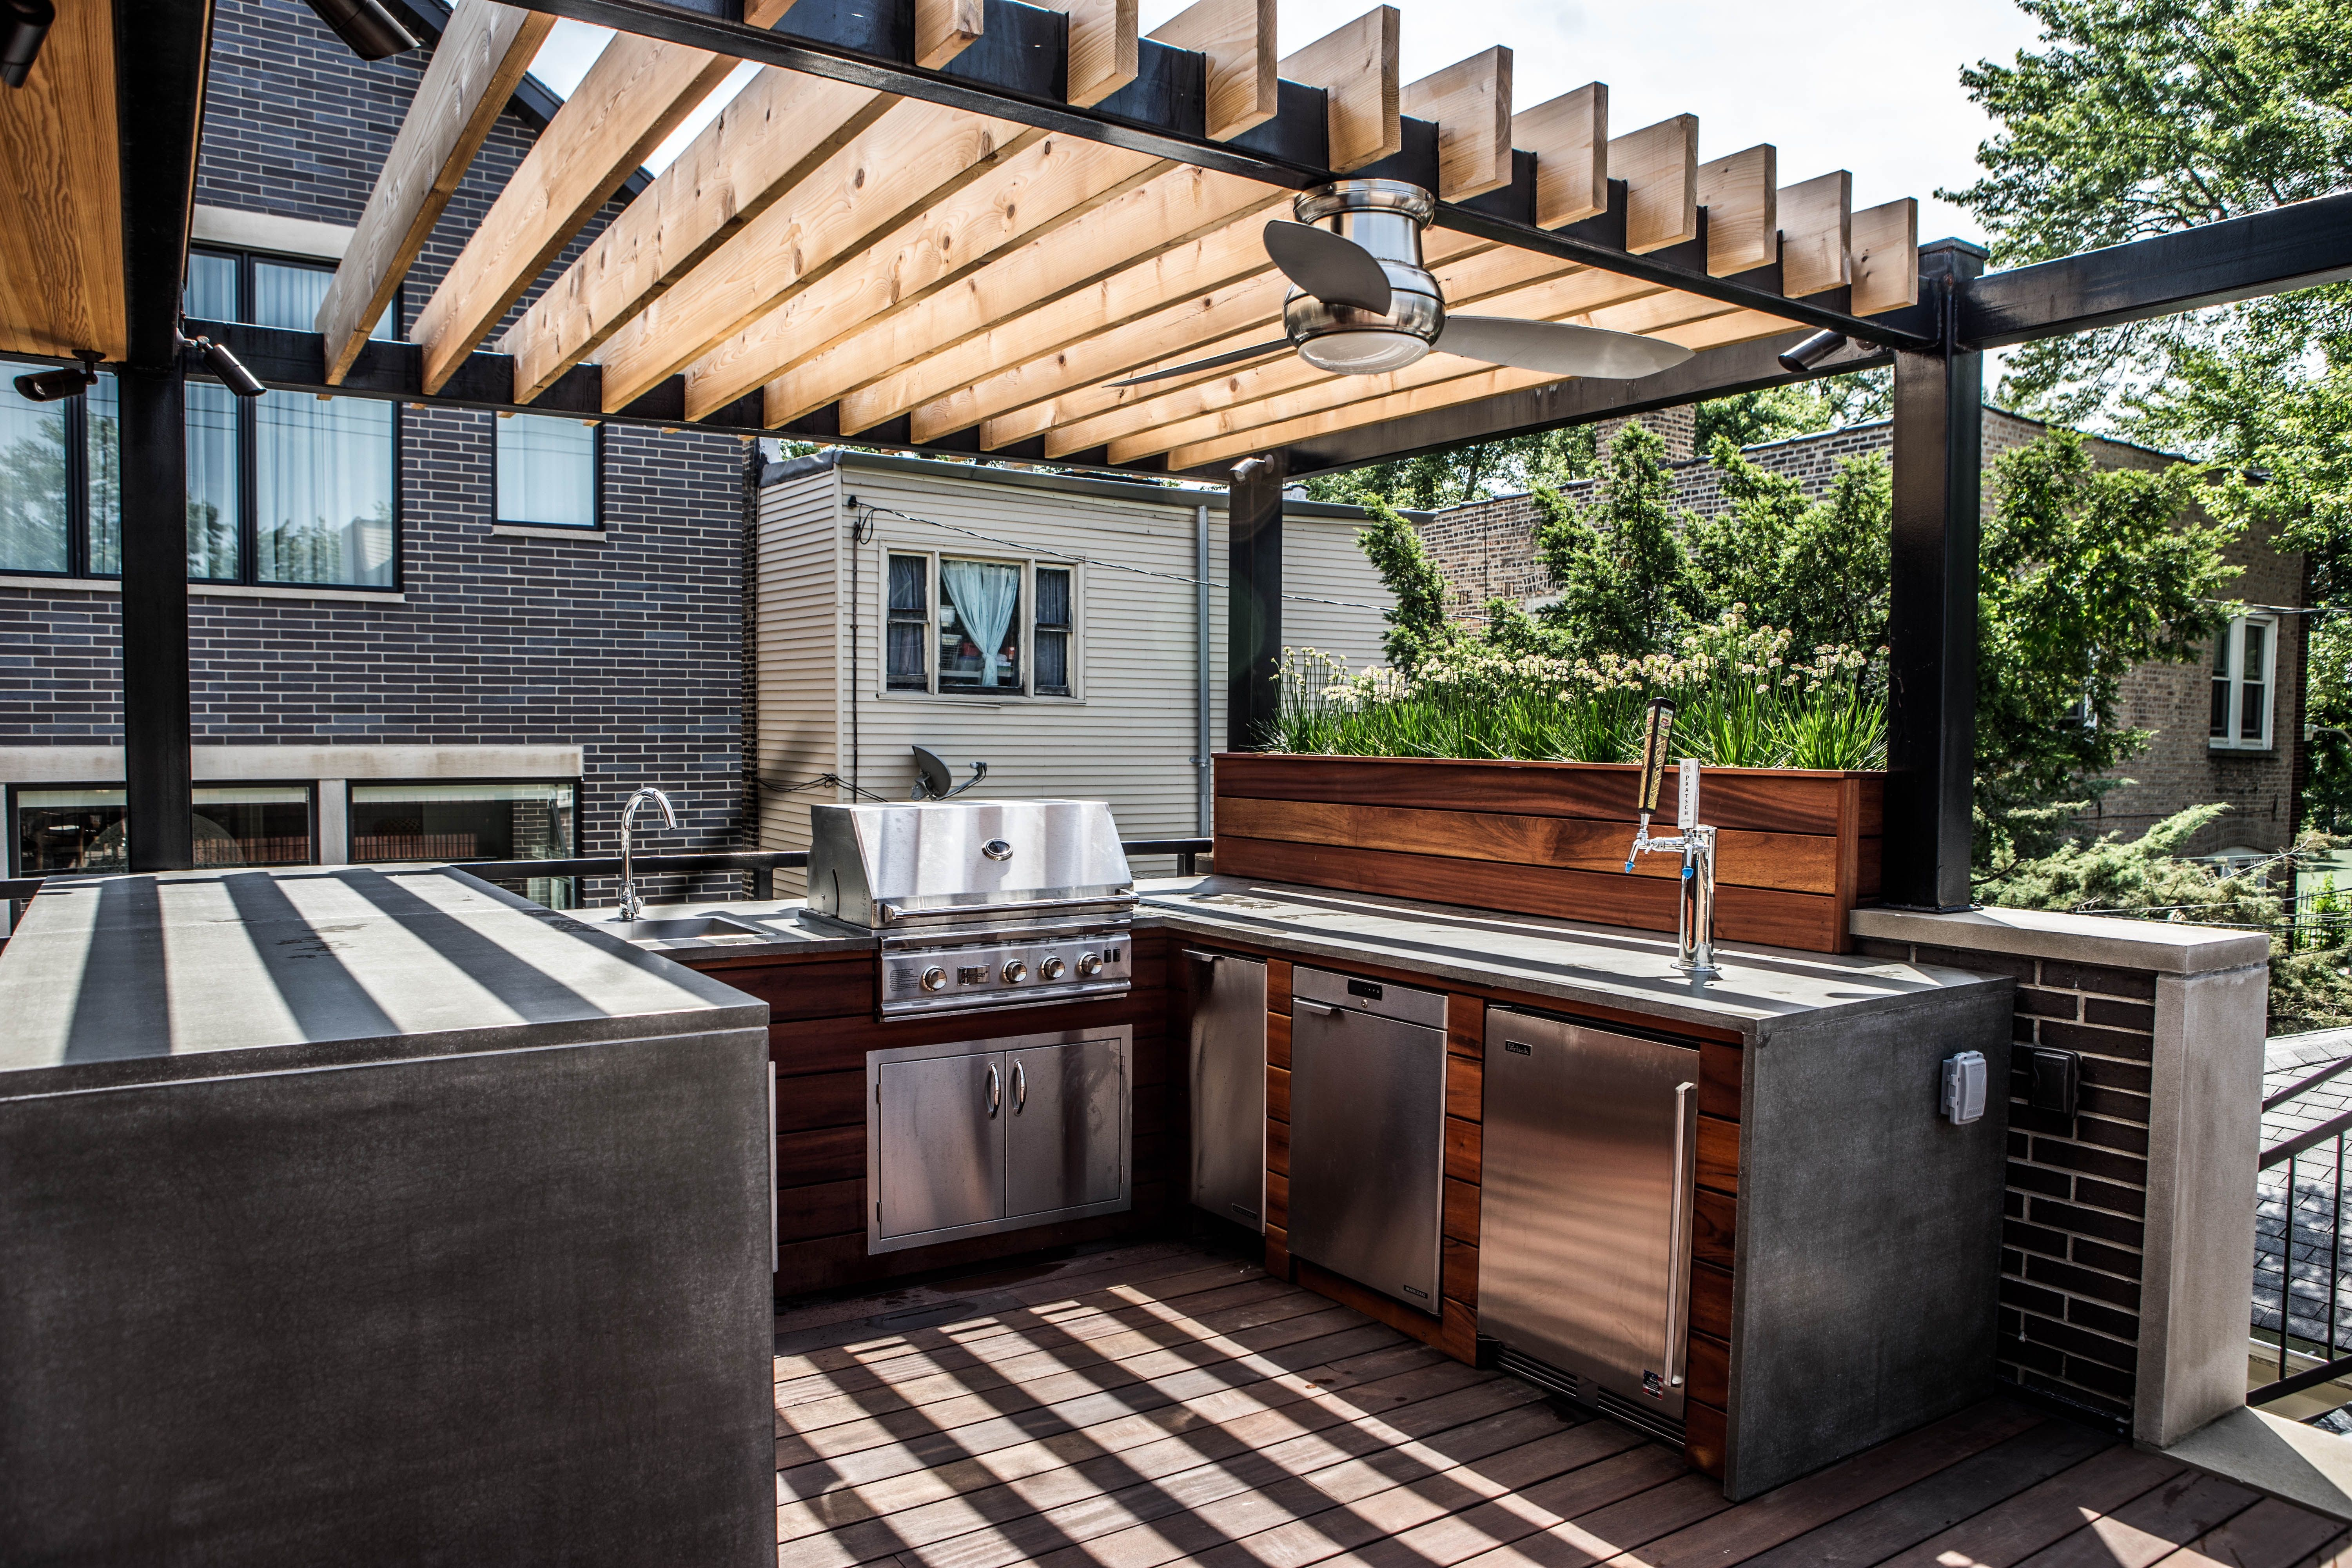 Best This Garage Roof Deck Shows How A Contemporary Twist On 400 x 300